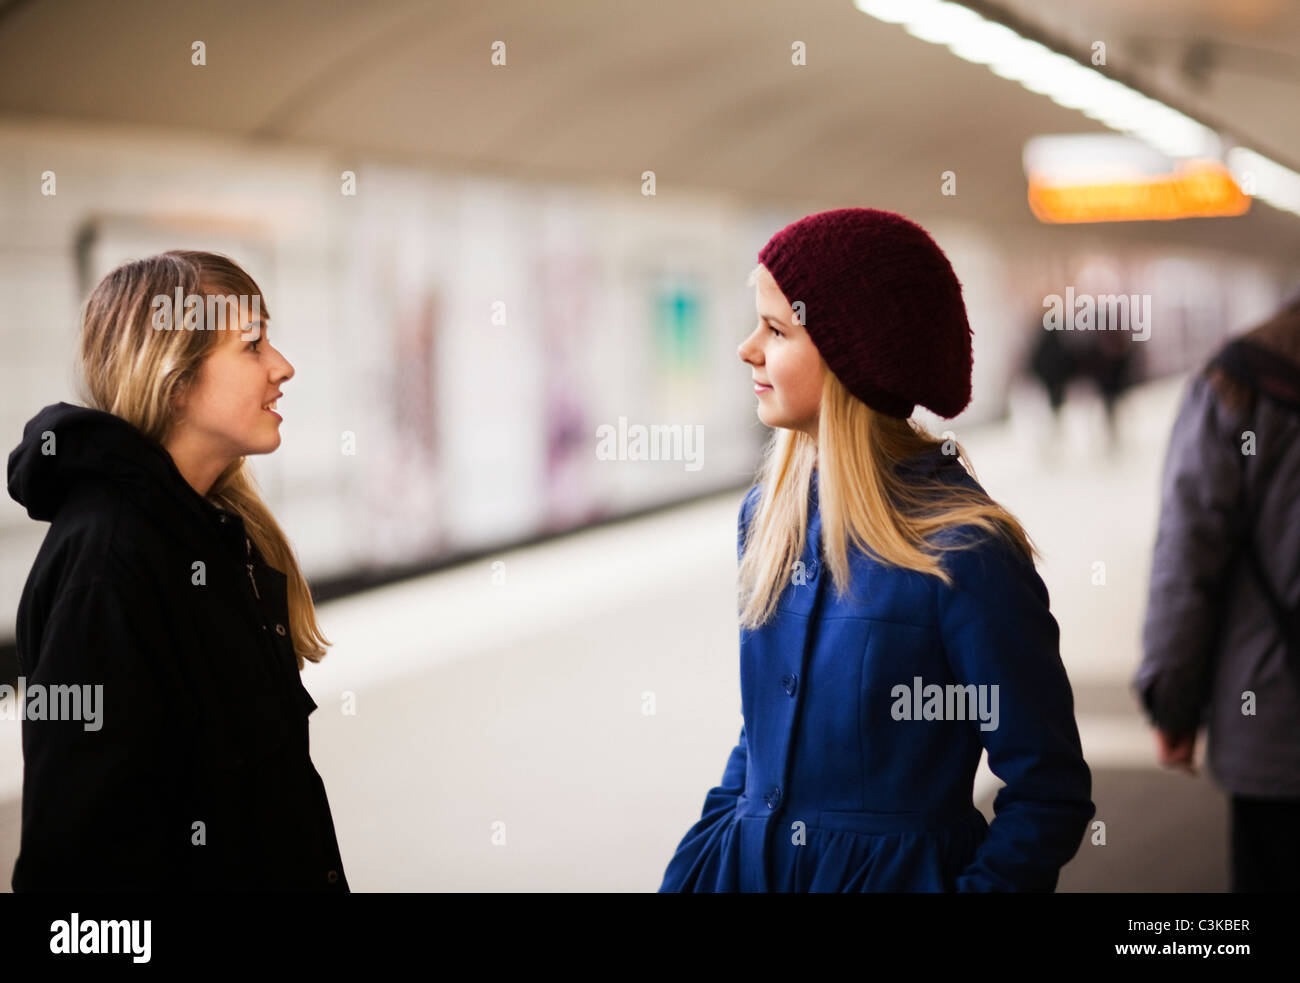 Teenage girls (14-15) talking on railway platform - Stock Image